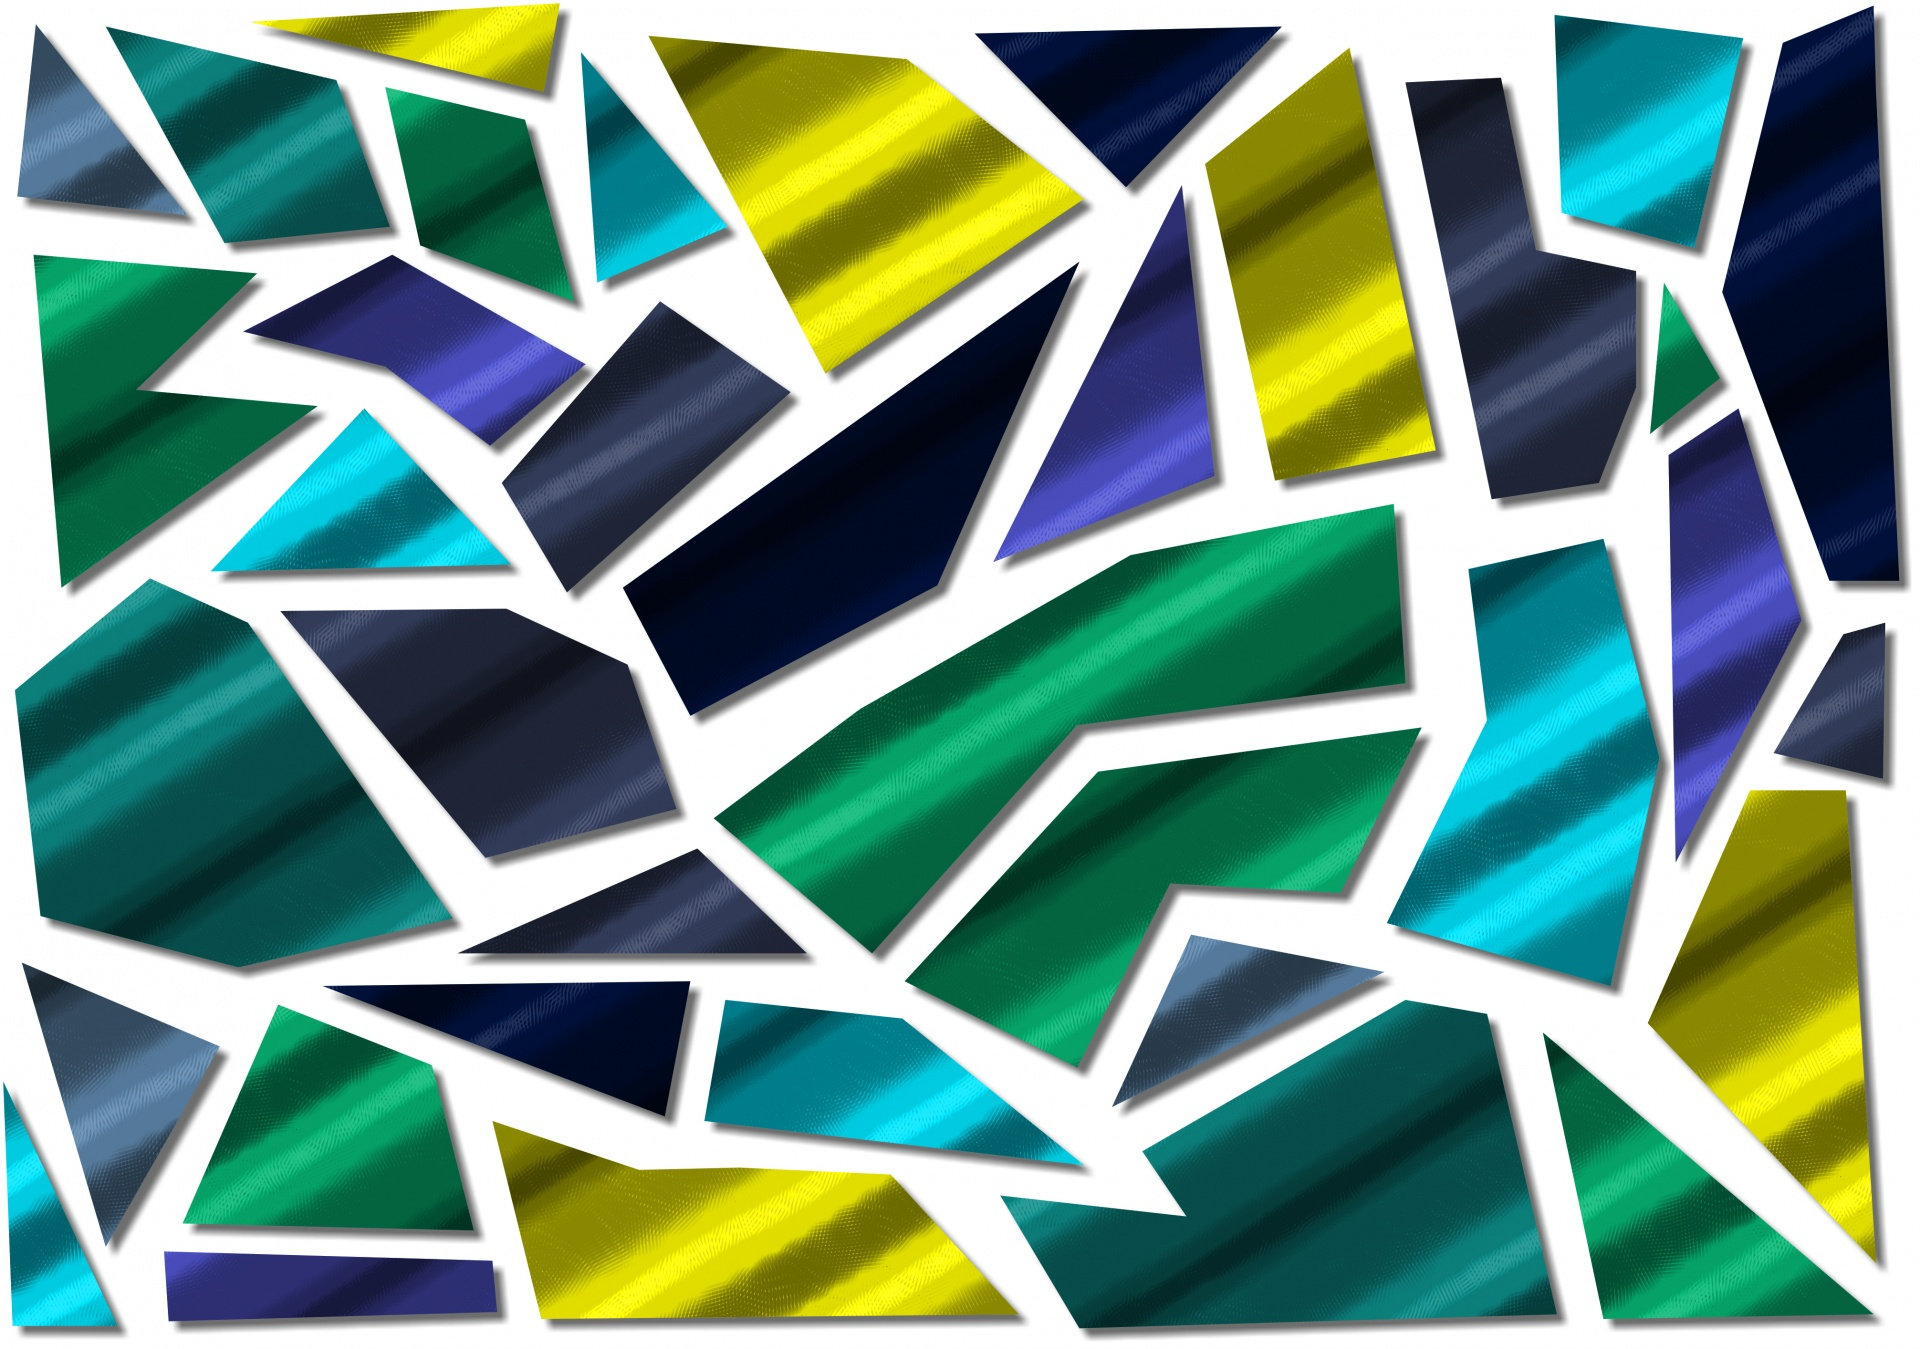 Mosiac clipart abstract.